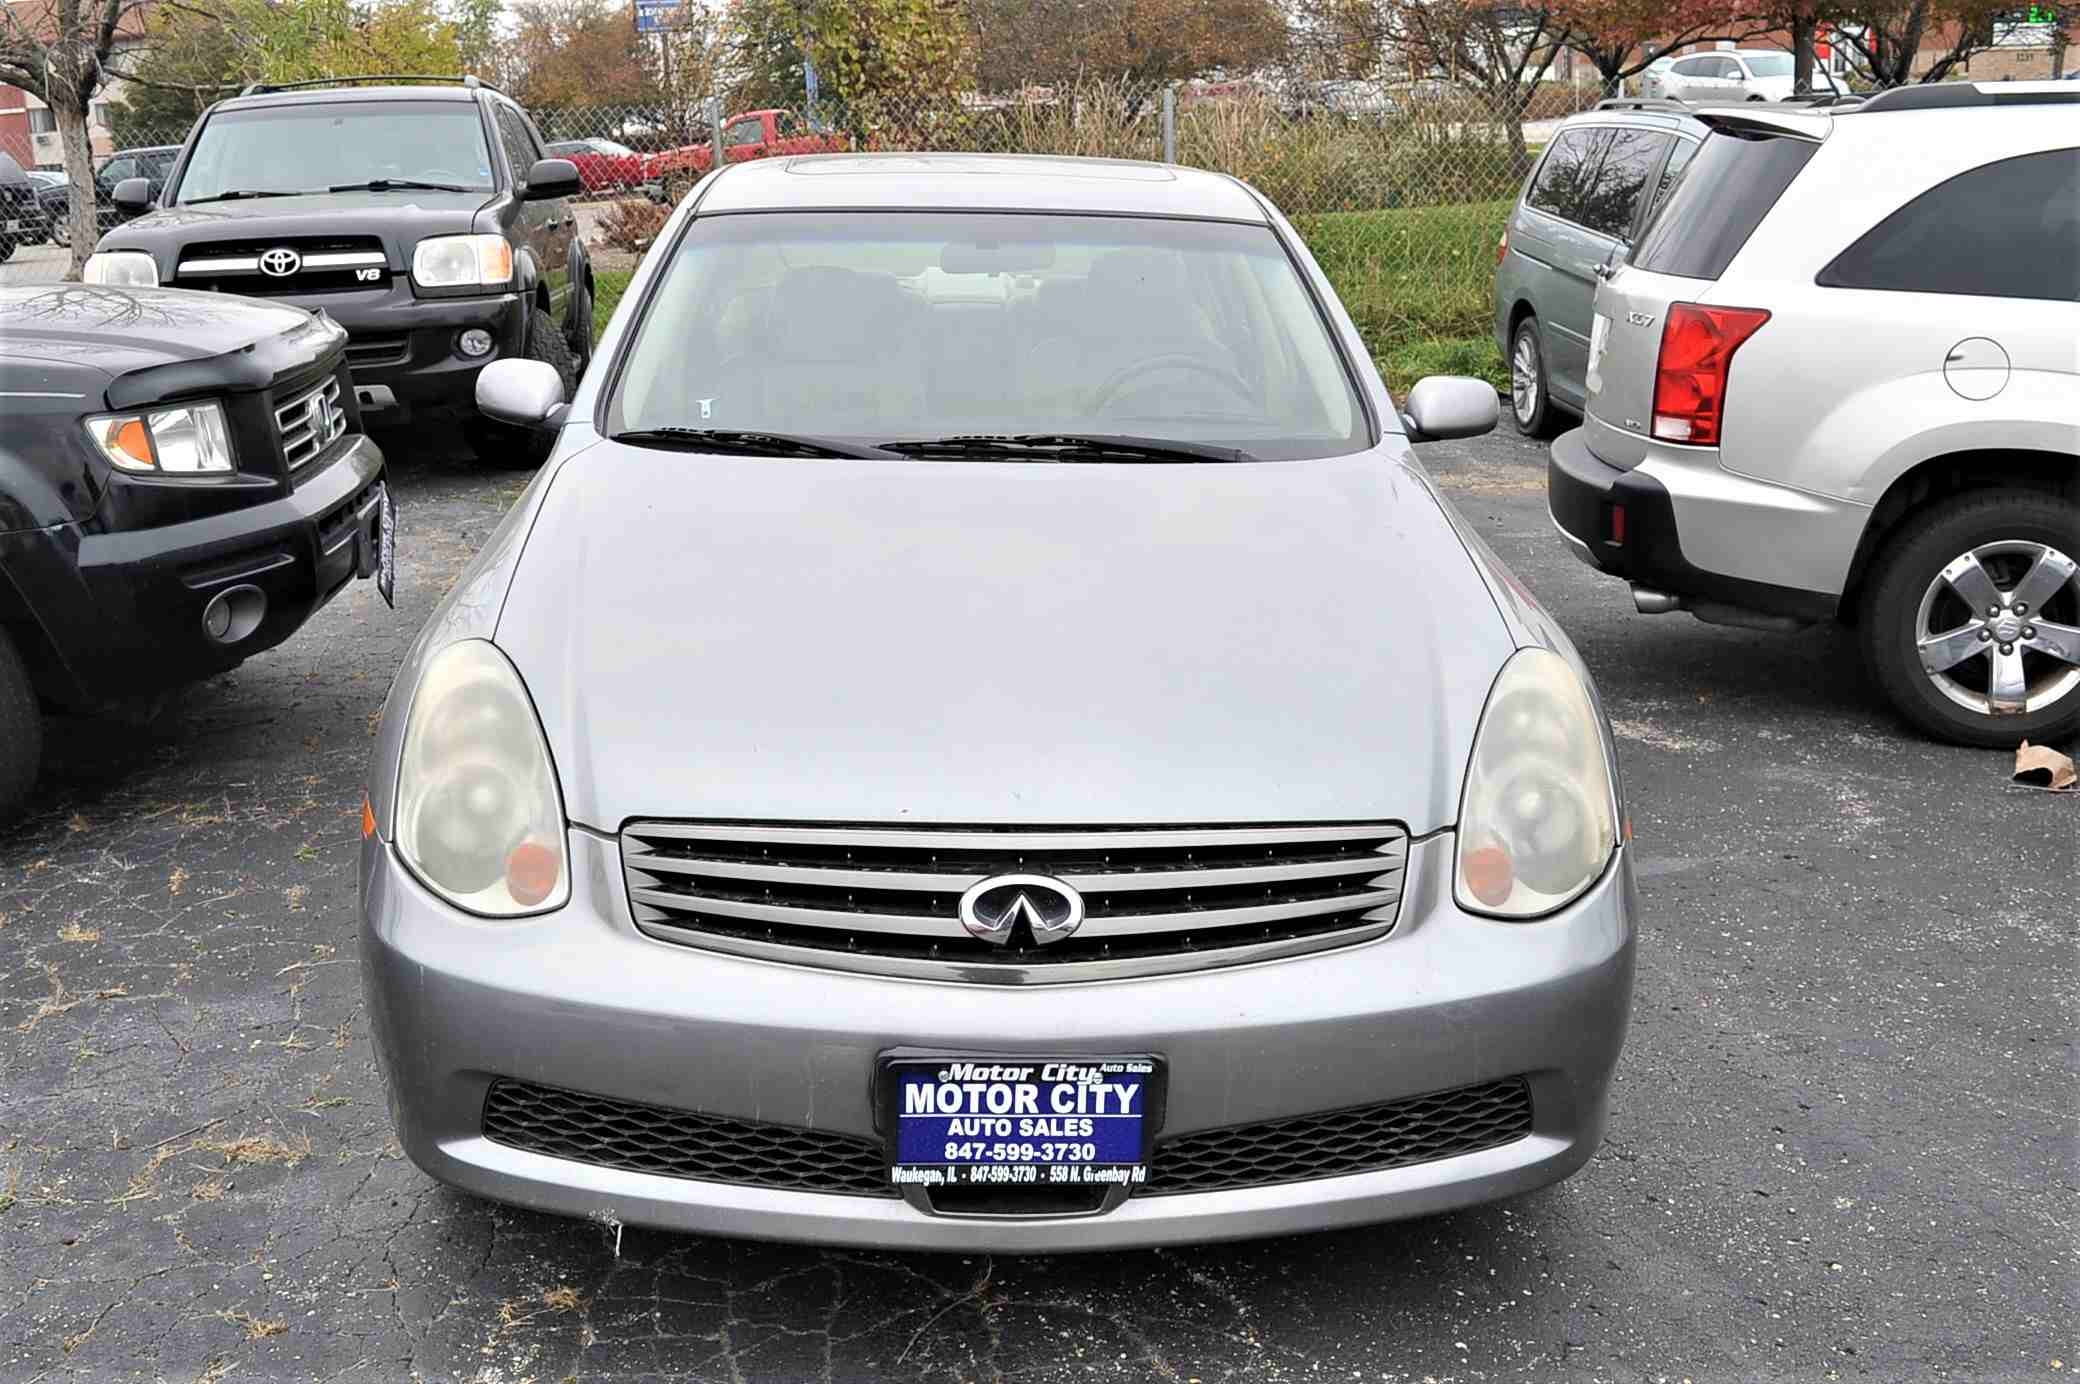 2006 Infiniti G35X Gray Sedan Used Car Sale Gurnee Kenosha Mchenry Chicago Illinois